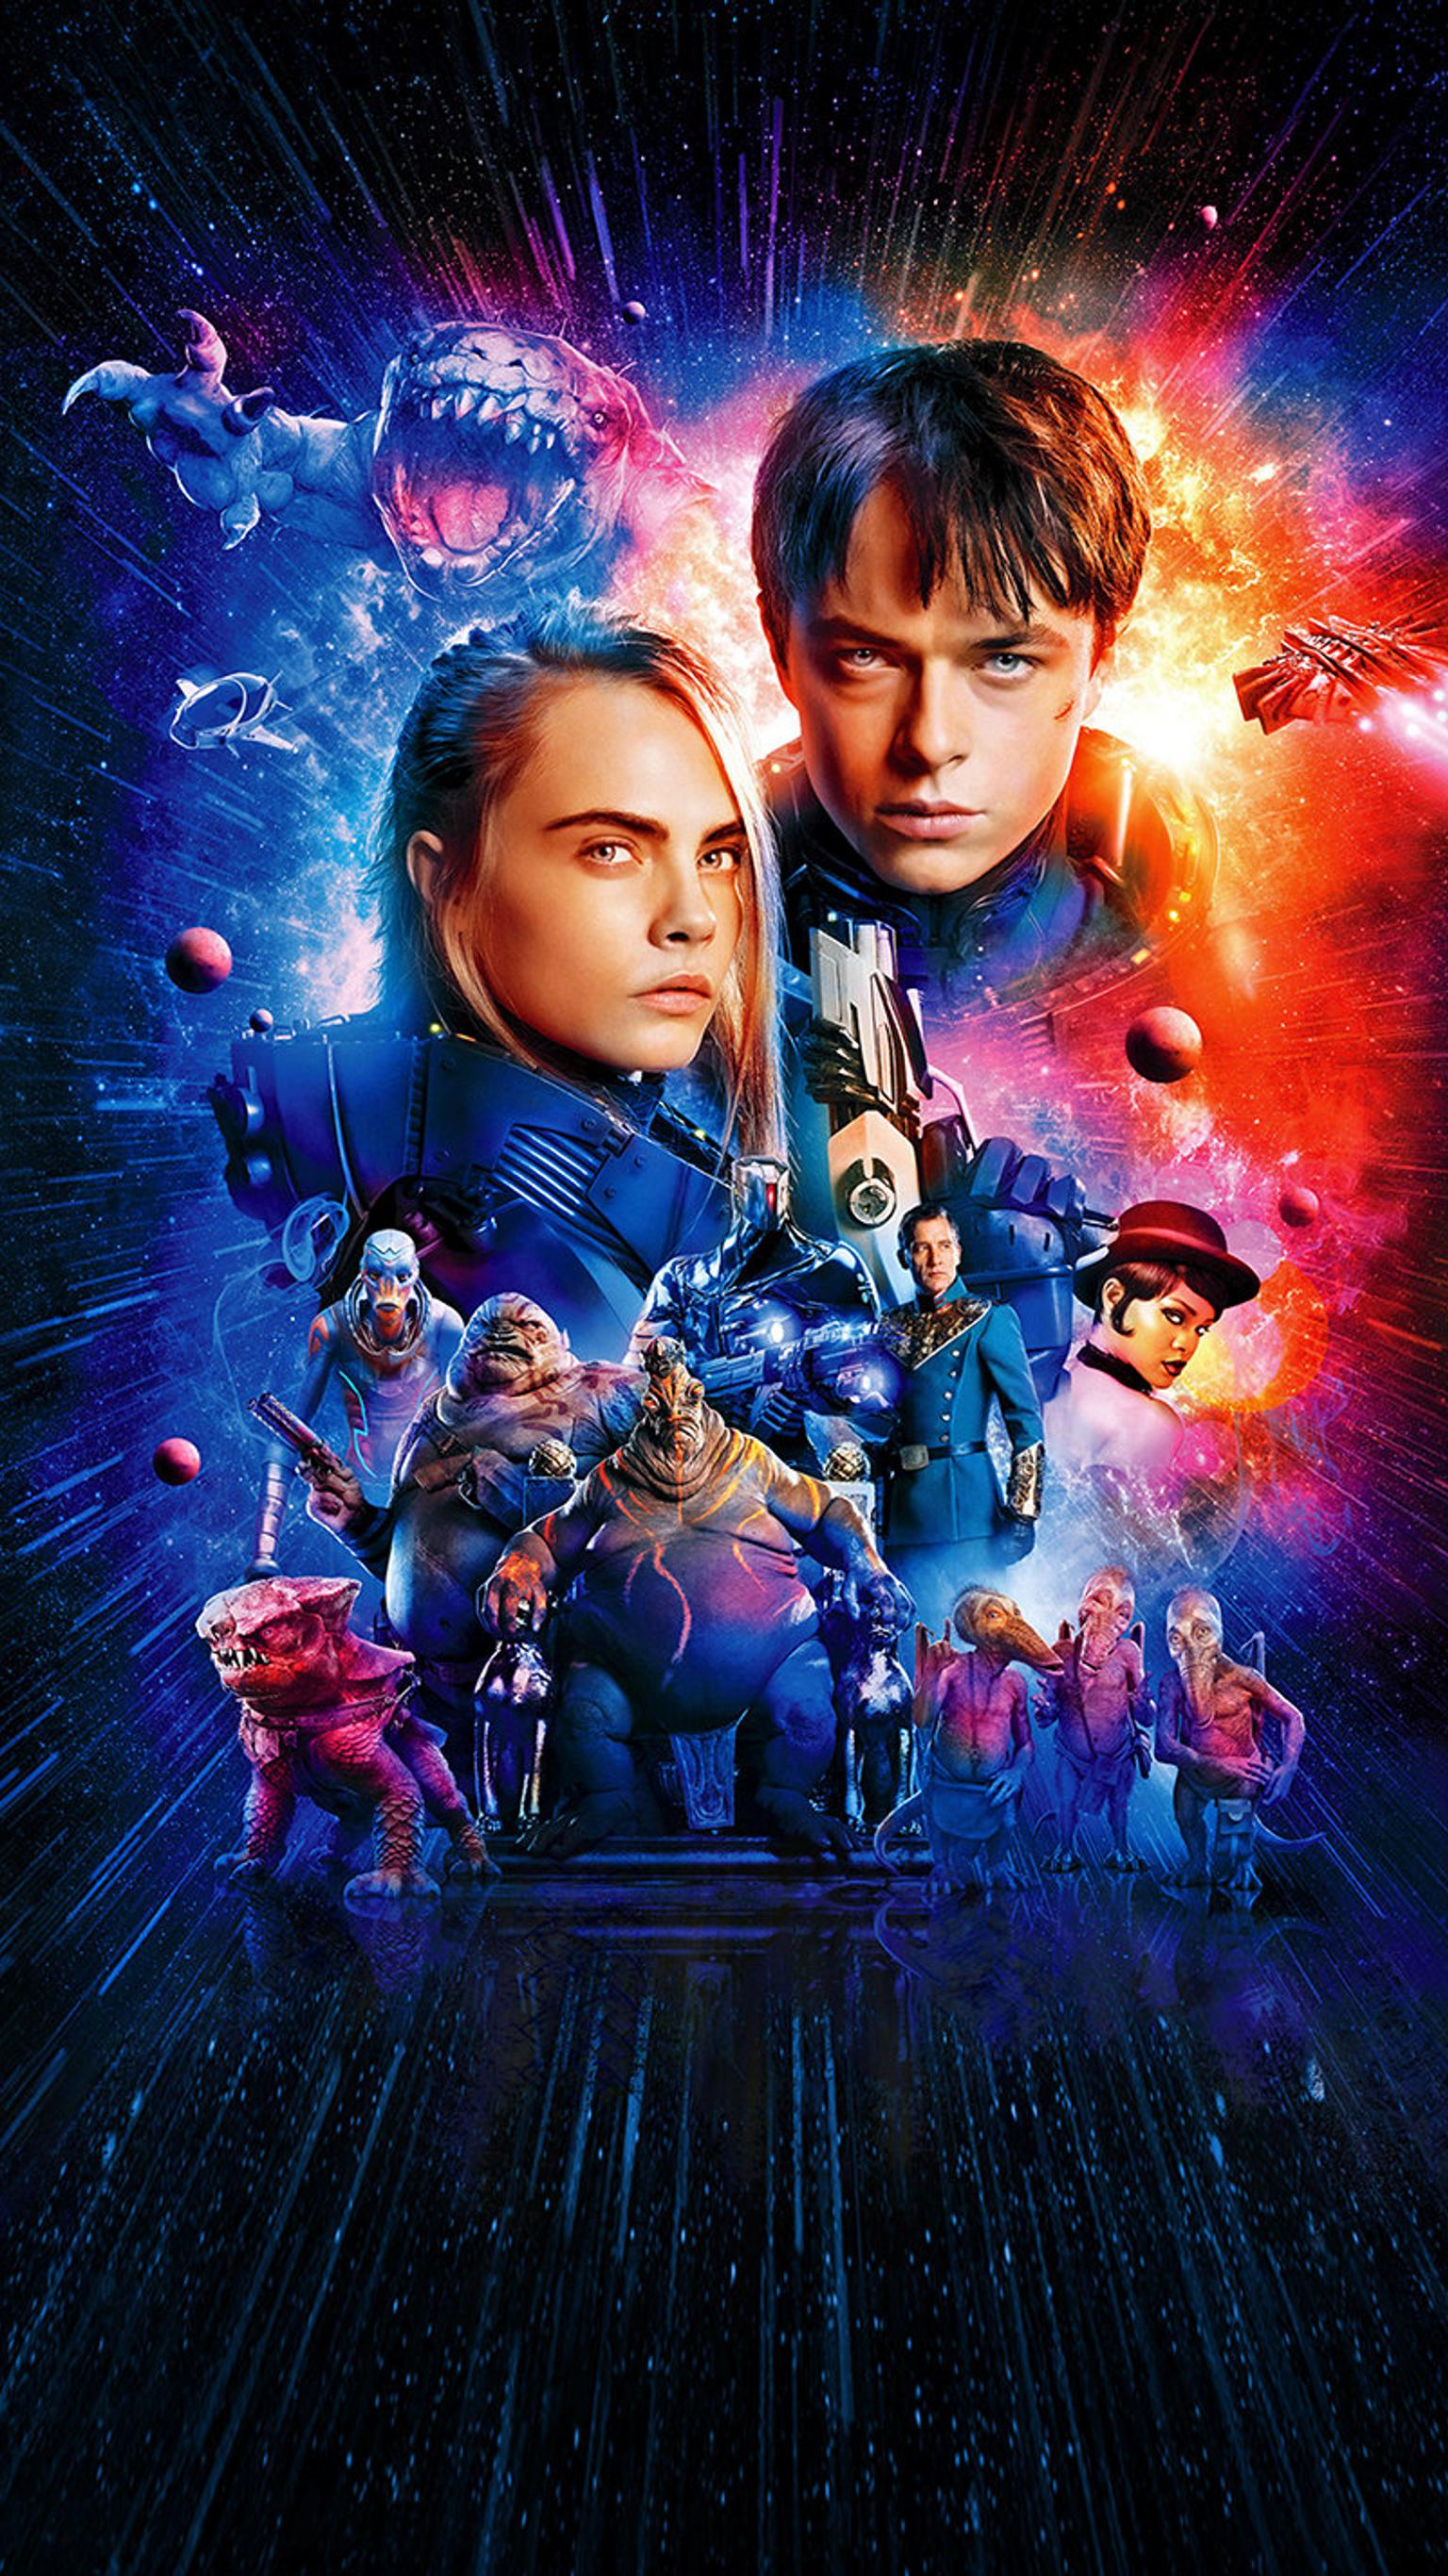 Valerian and the City of a Thousand Planets Wallpaper 7   1536 X 1536x2732